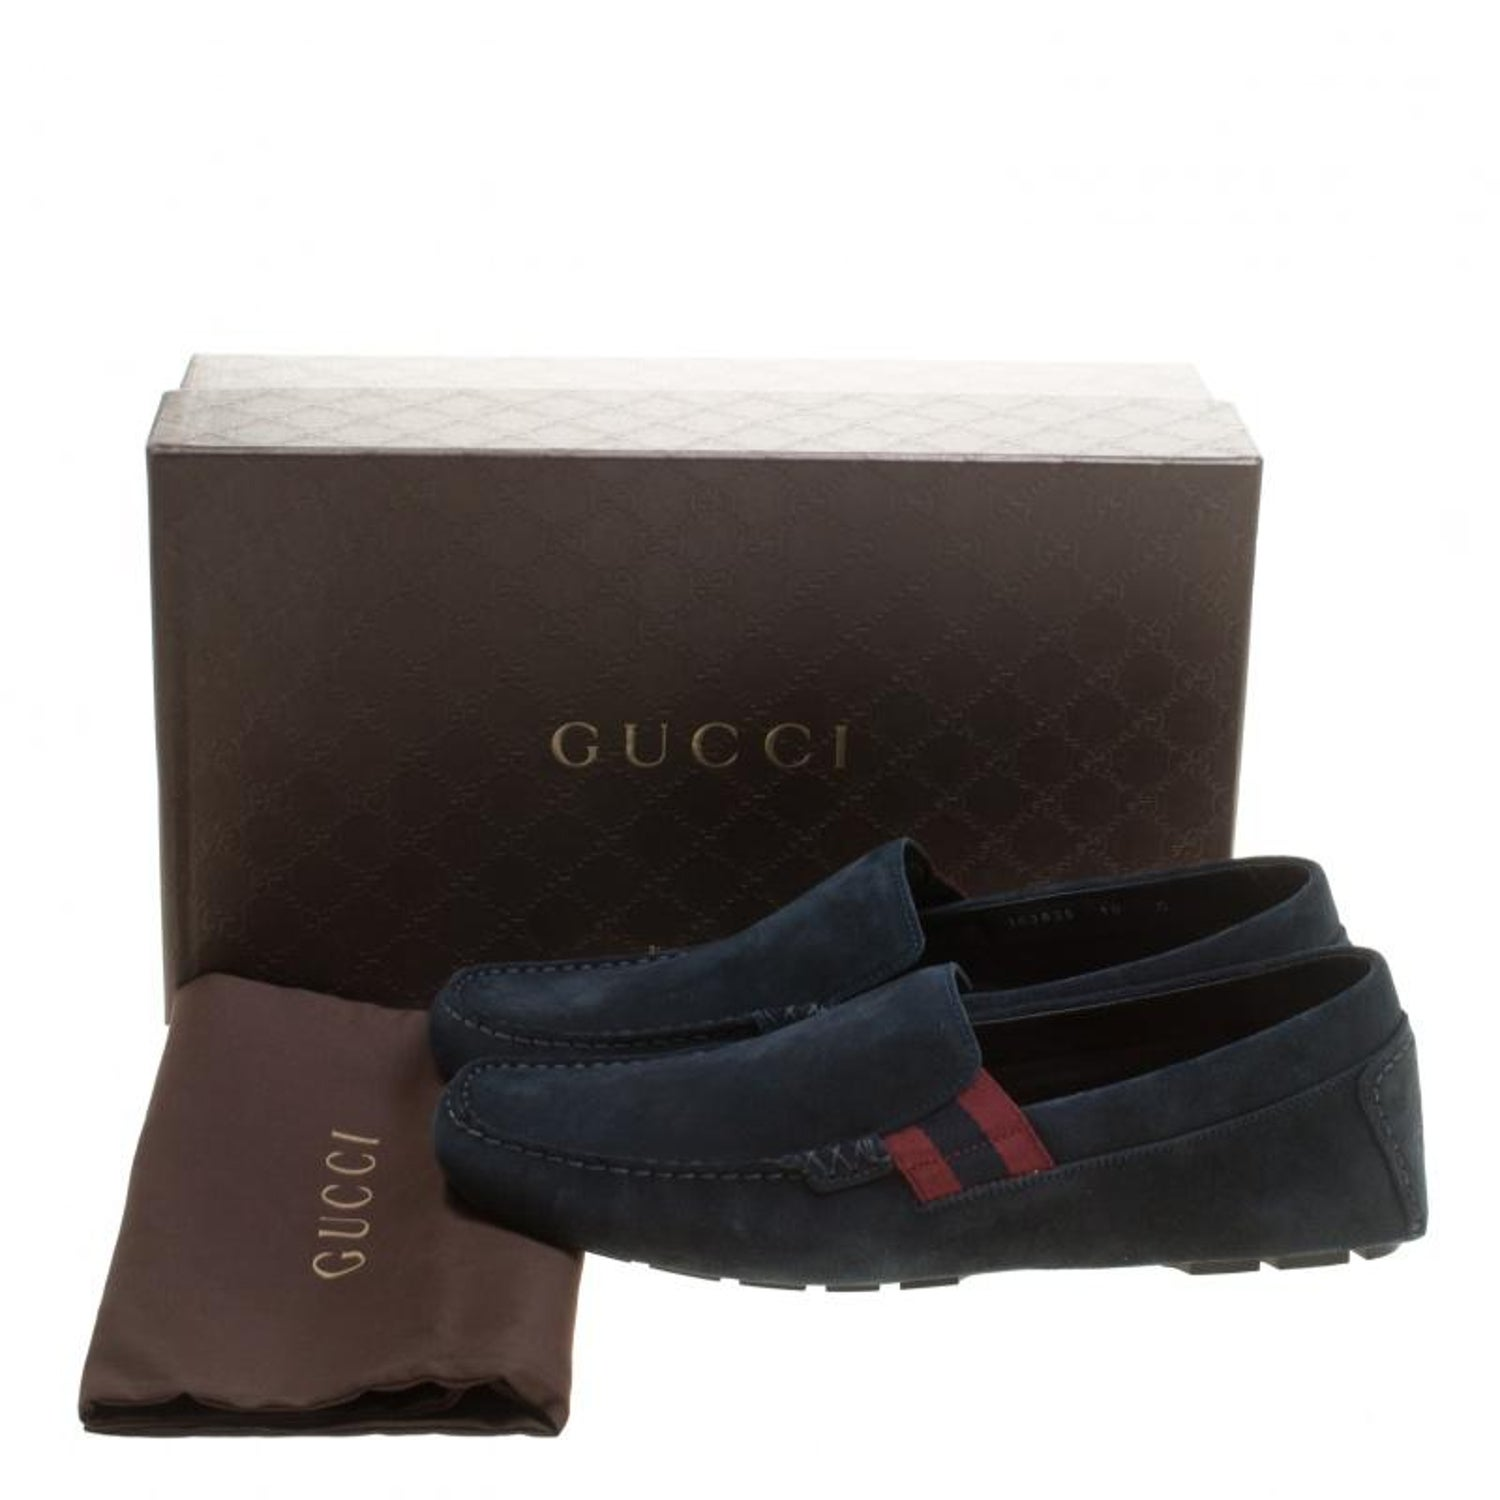 471dd396165bb5 Gucci Navy Blue Suede Web Detail Loafers Size 44 For Sale at 1stdibs